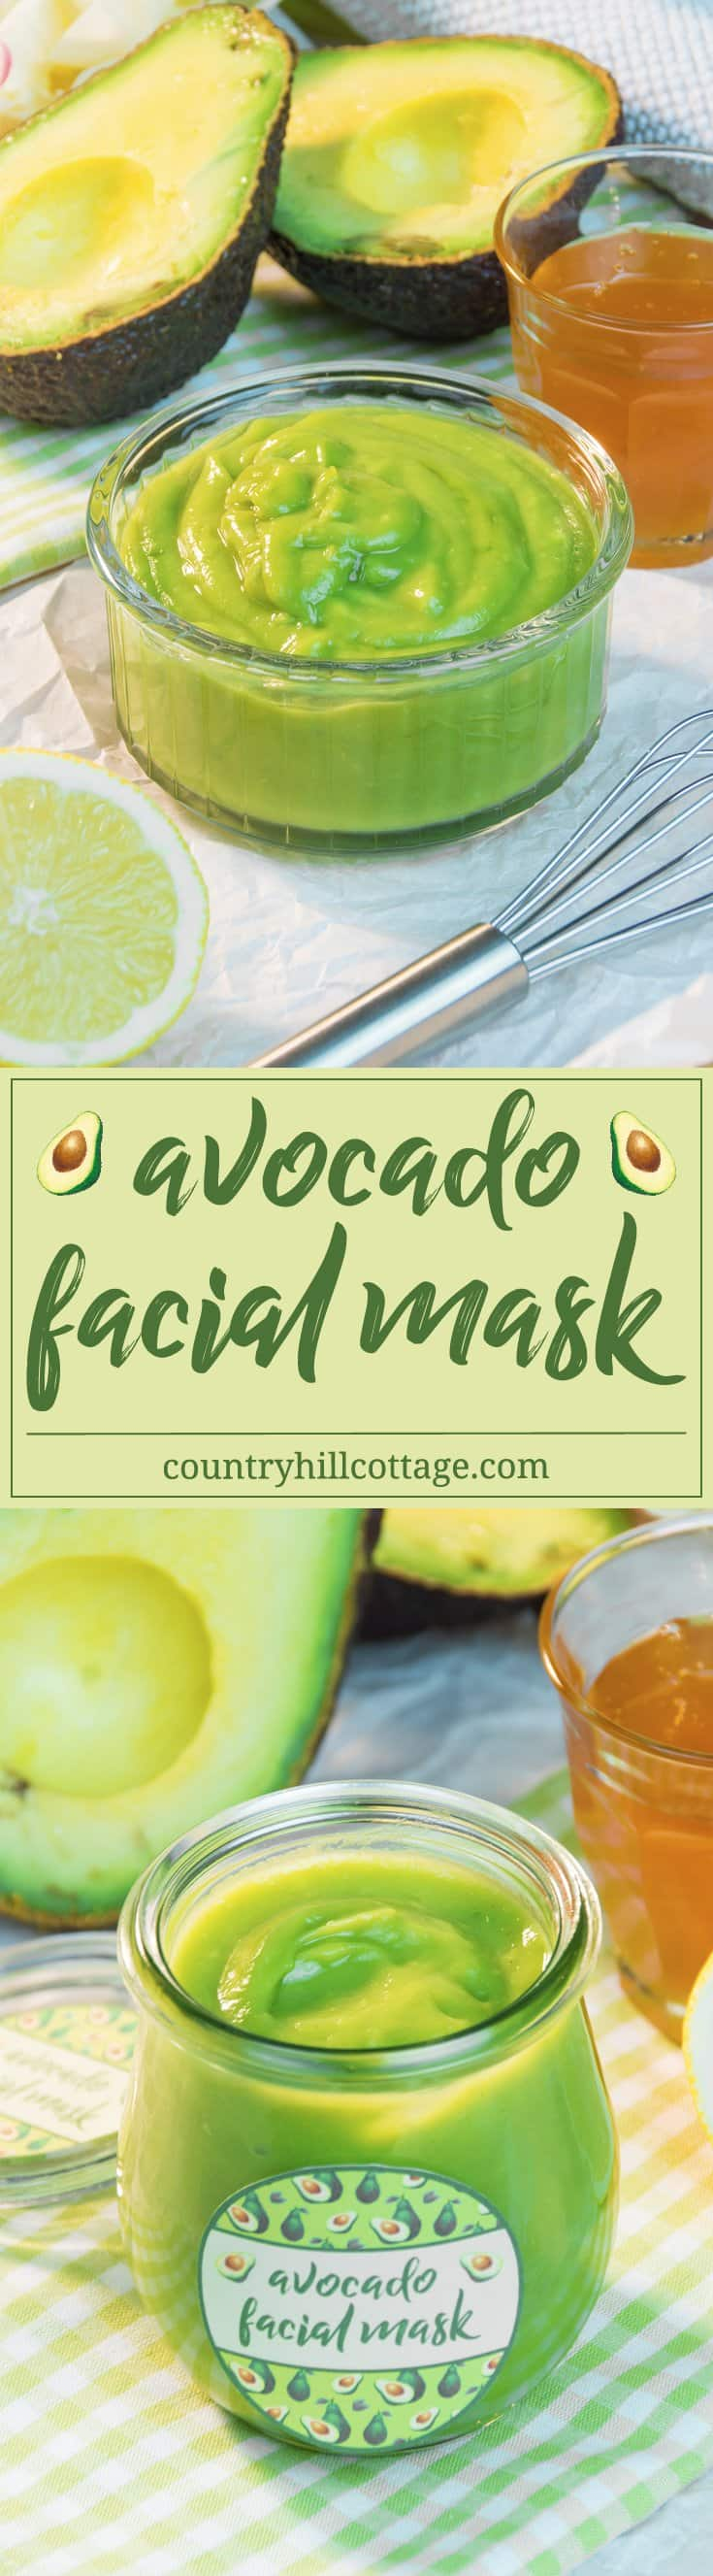 Revive your skin with a nourishing avocado facial mask! This facial mask is made with only 3 ingredients and will make your skin feeling nourished, replenished, and rested. Avocados are rich in vitamins E and B and have moisturising properties. Honey, especially raw and unpasteurised, is full of antioxidants, moisturises and helps to soothe irritations. Lemons are natural cleansers, and the vitamin C is said to protect your skin from the effects of ageing. #skincare #facialmask #avocado #beautydiy | countryhillcottage.com